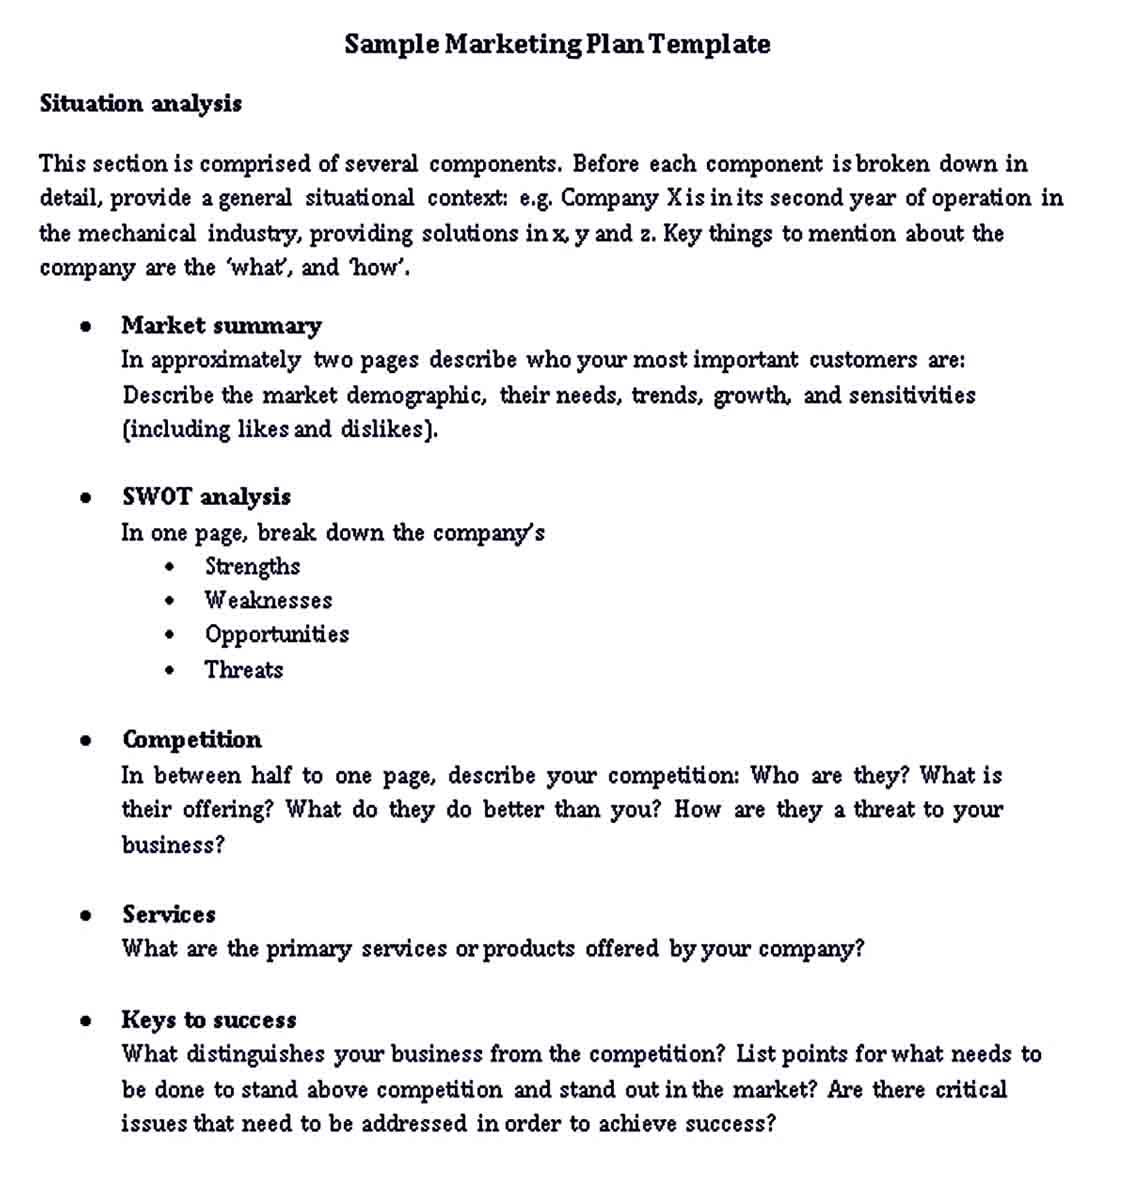 One Page Marketing Plan Template   room surf.com